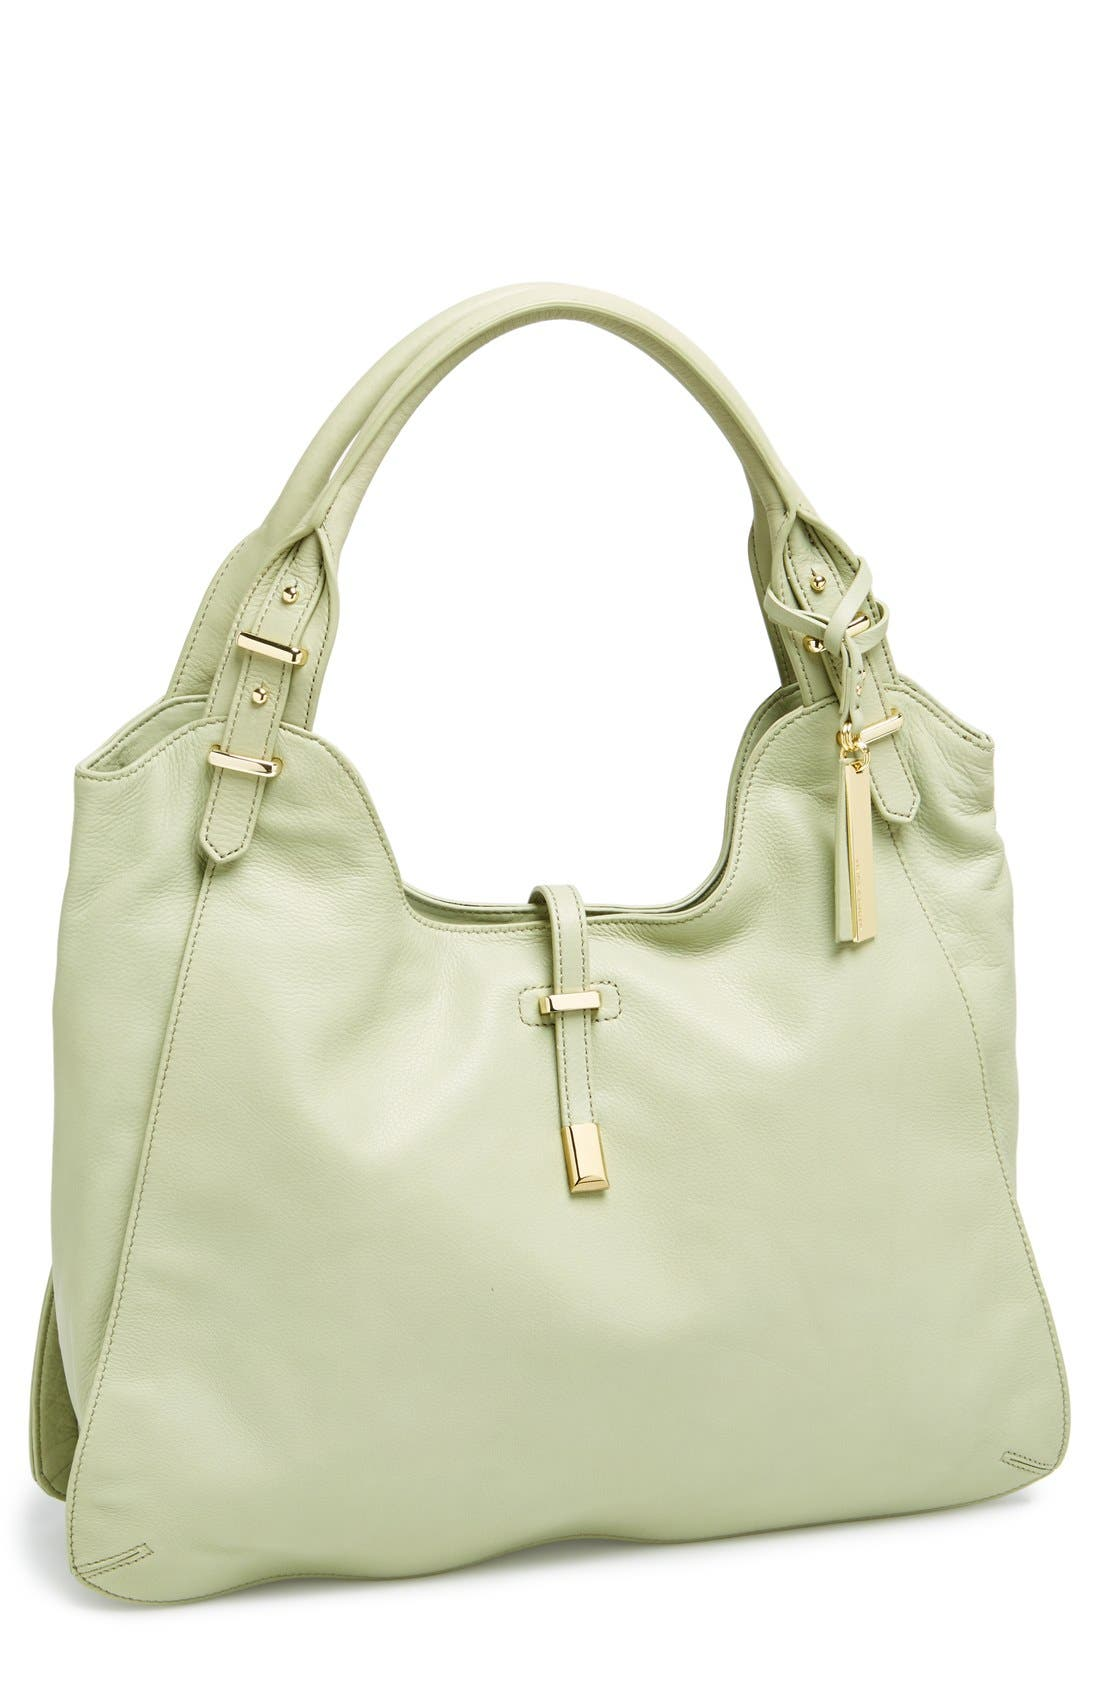 Alternate Image 1 Selected - Vince Camuto 'Molly' Leather Tote